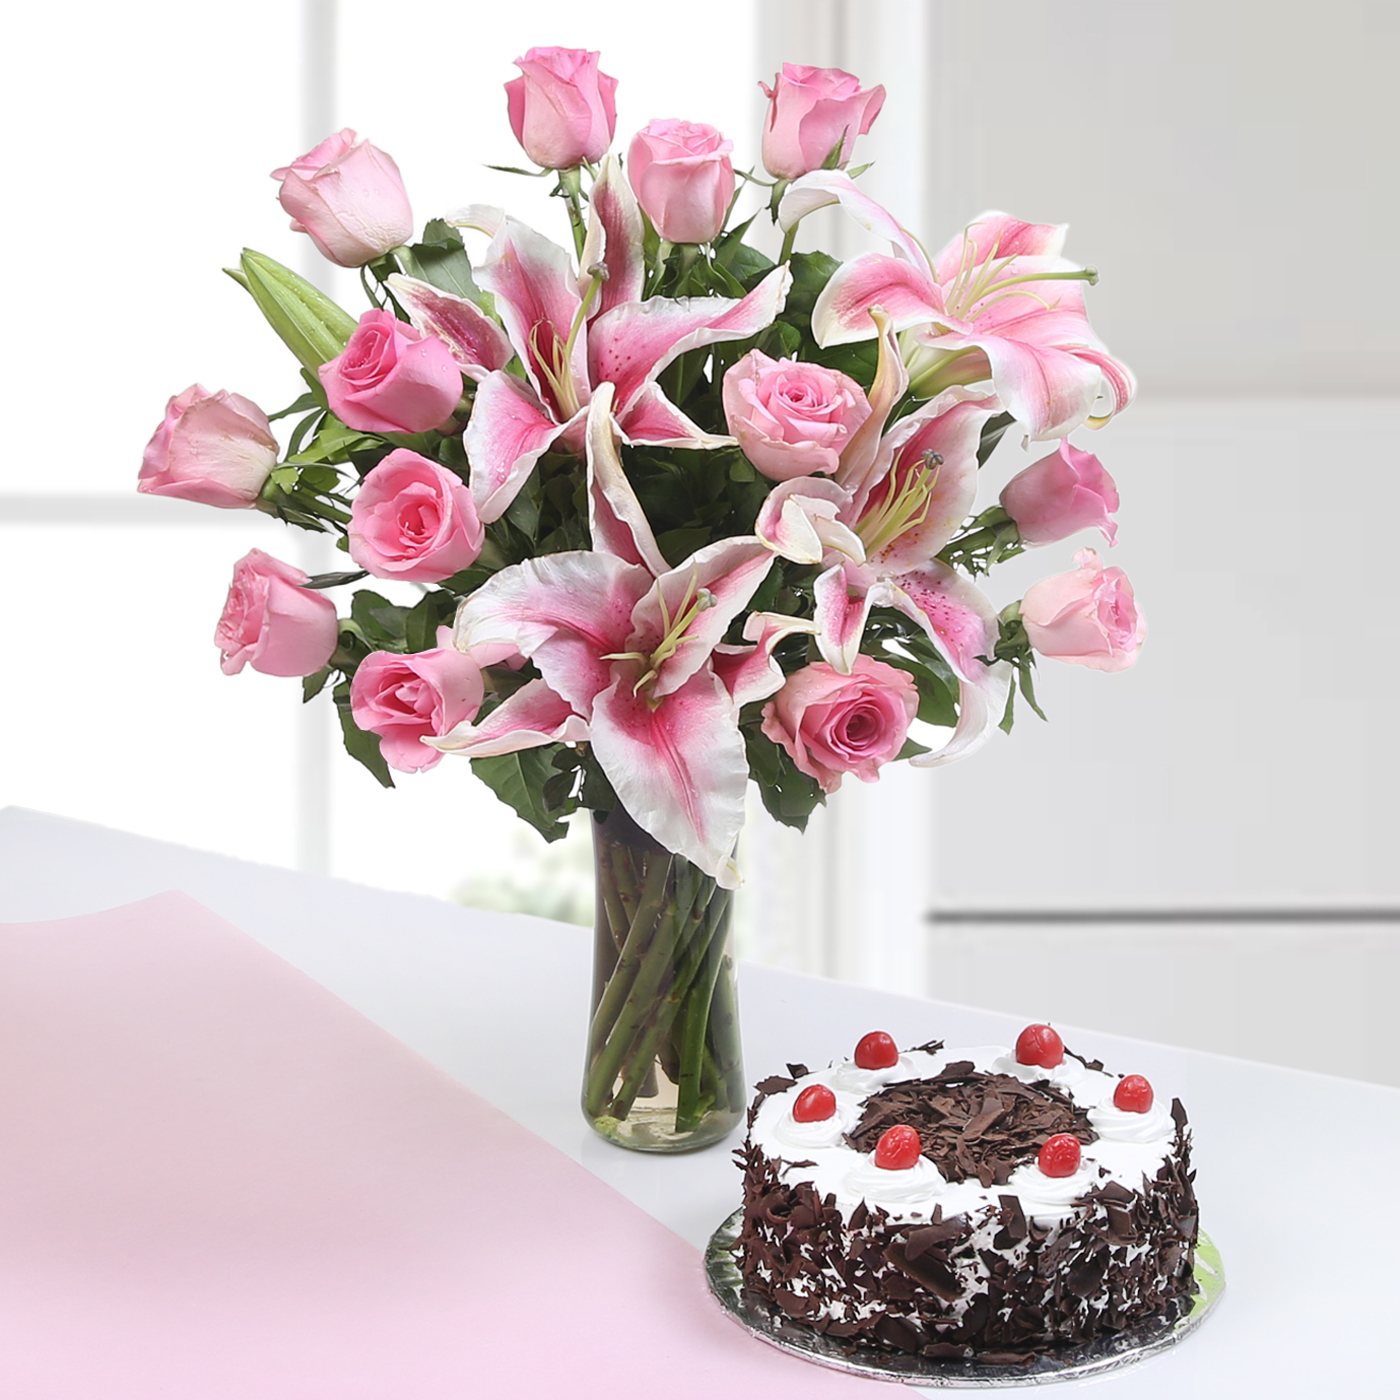 Beautiful 13 Pink Roses & 3 Lilies in a Glass Vase with Round Black Forest Cake